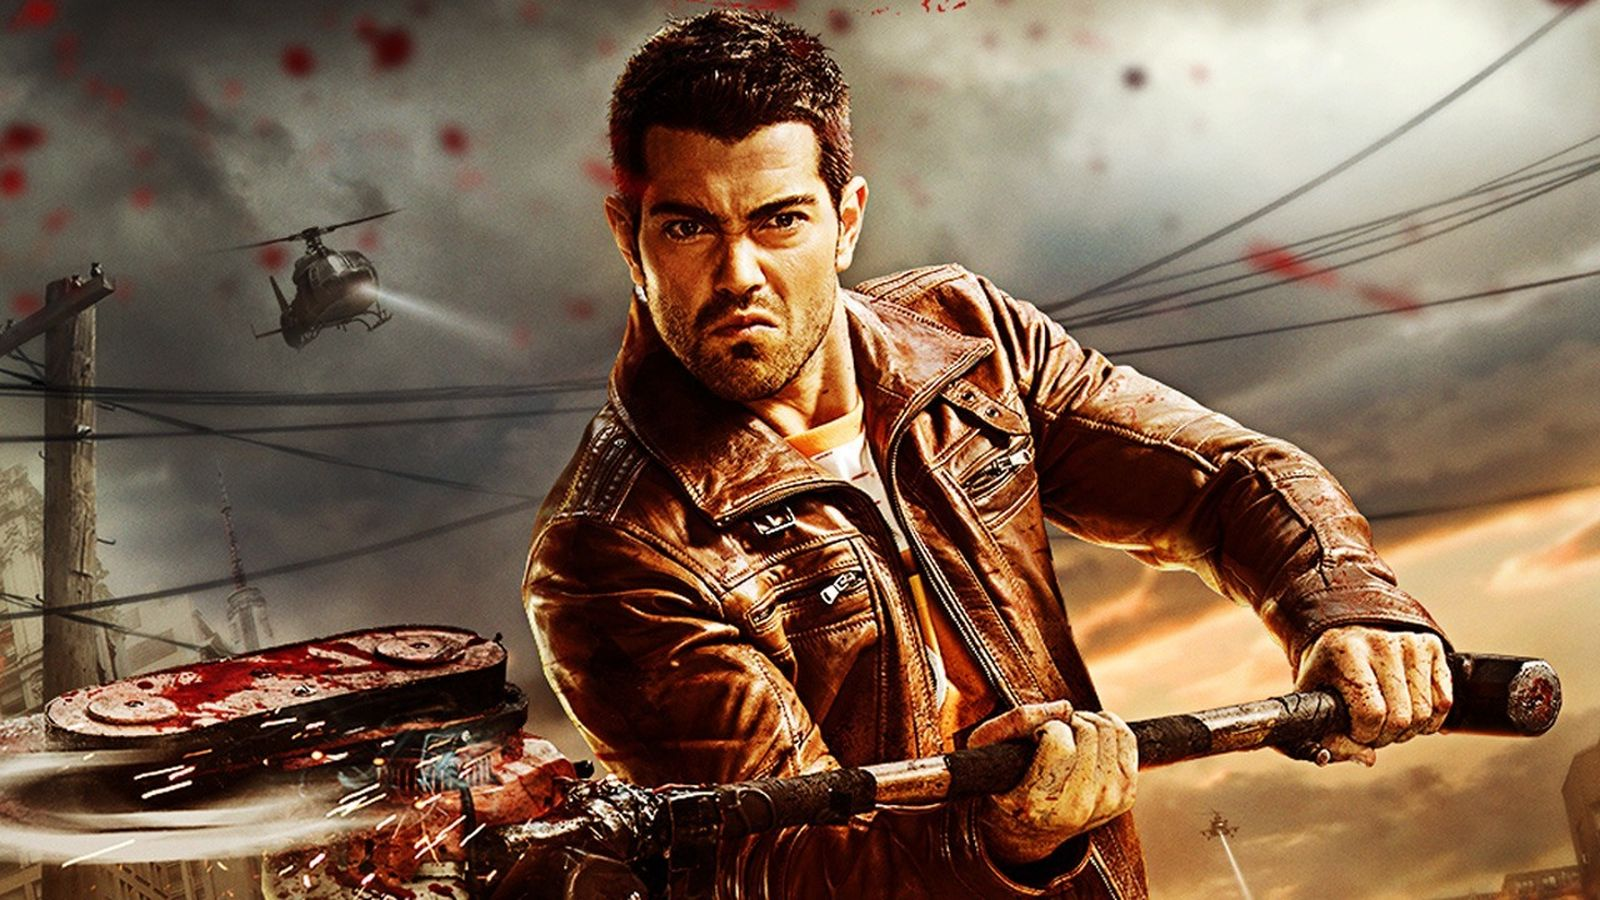 Dead Rising End Game Dead Rising Productions 2016 Review Stg